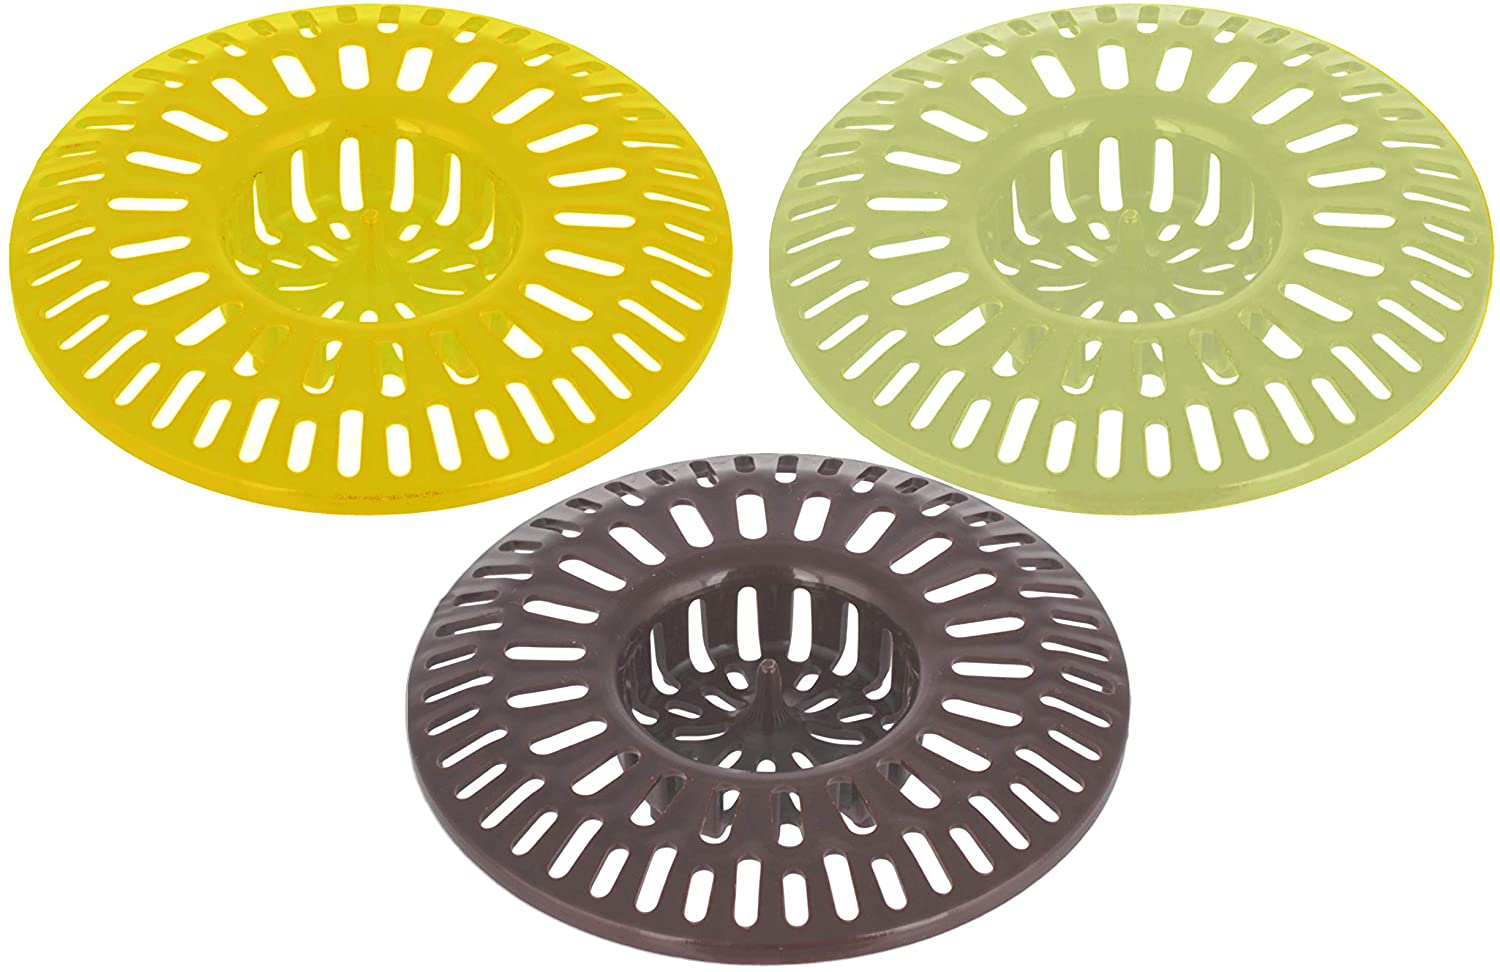 Shower Drain Stopper Hair Catcher 3 inches - Pack of 3 - Sink Strainer For Bathroom - Trap Cover for Bathtub - Catching Basket for Tub - Bath Catchers